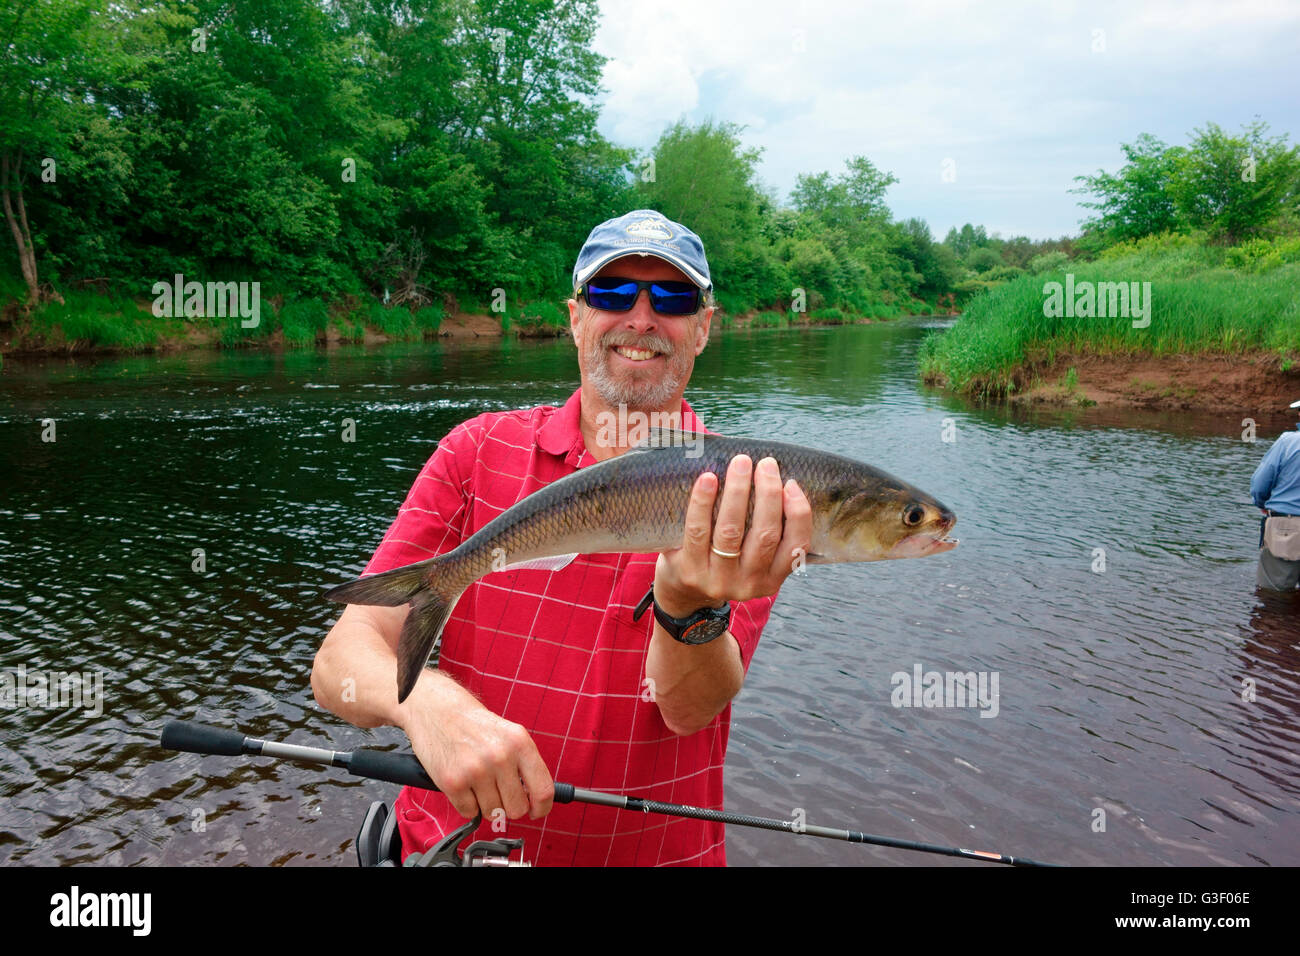 An angler or man holding an American shad (Alosa sapidissima) fish species caught in the Annapolis River of Nova - Stock Image